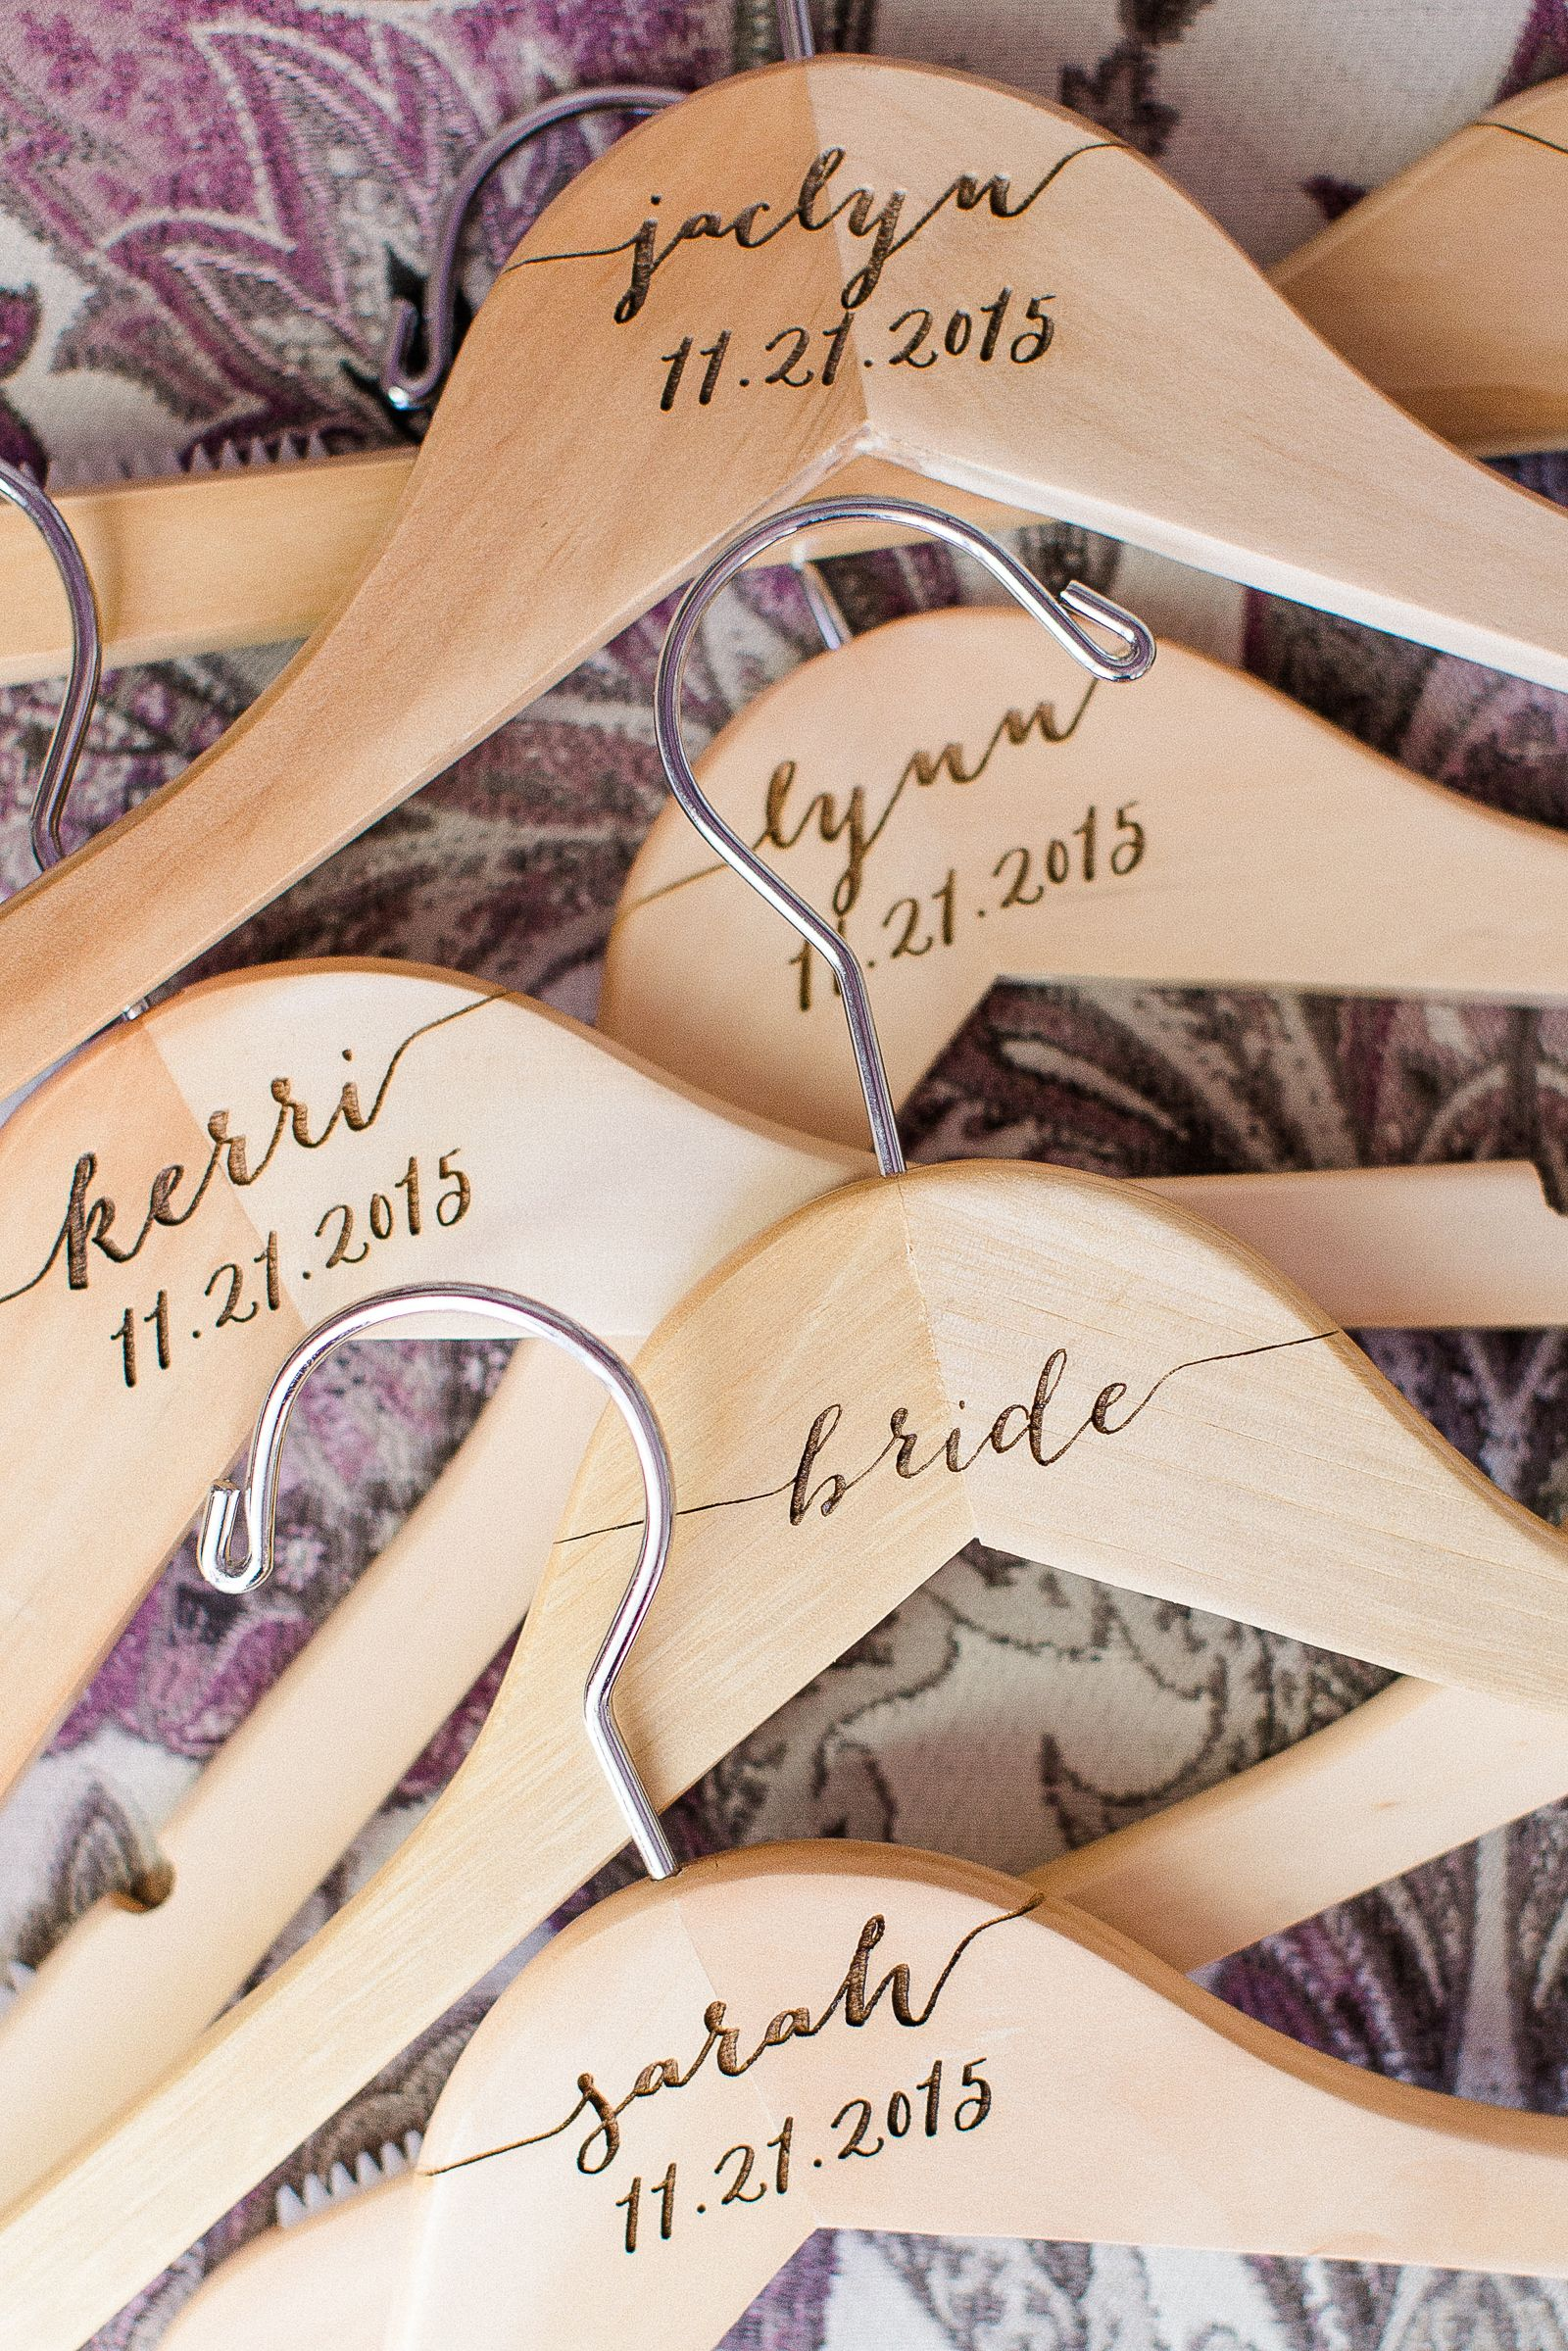 Wedding Hanger With Name For Bride And Bridesmaids Wedding Etsy Wedding Hangers Personalized Wedding Gifts For Bride Bridal Party Getting Ready